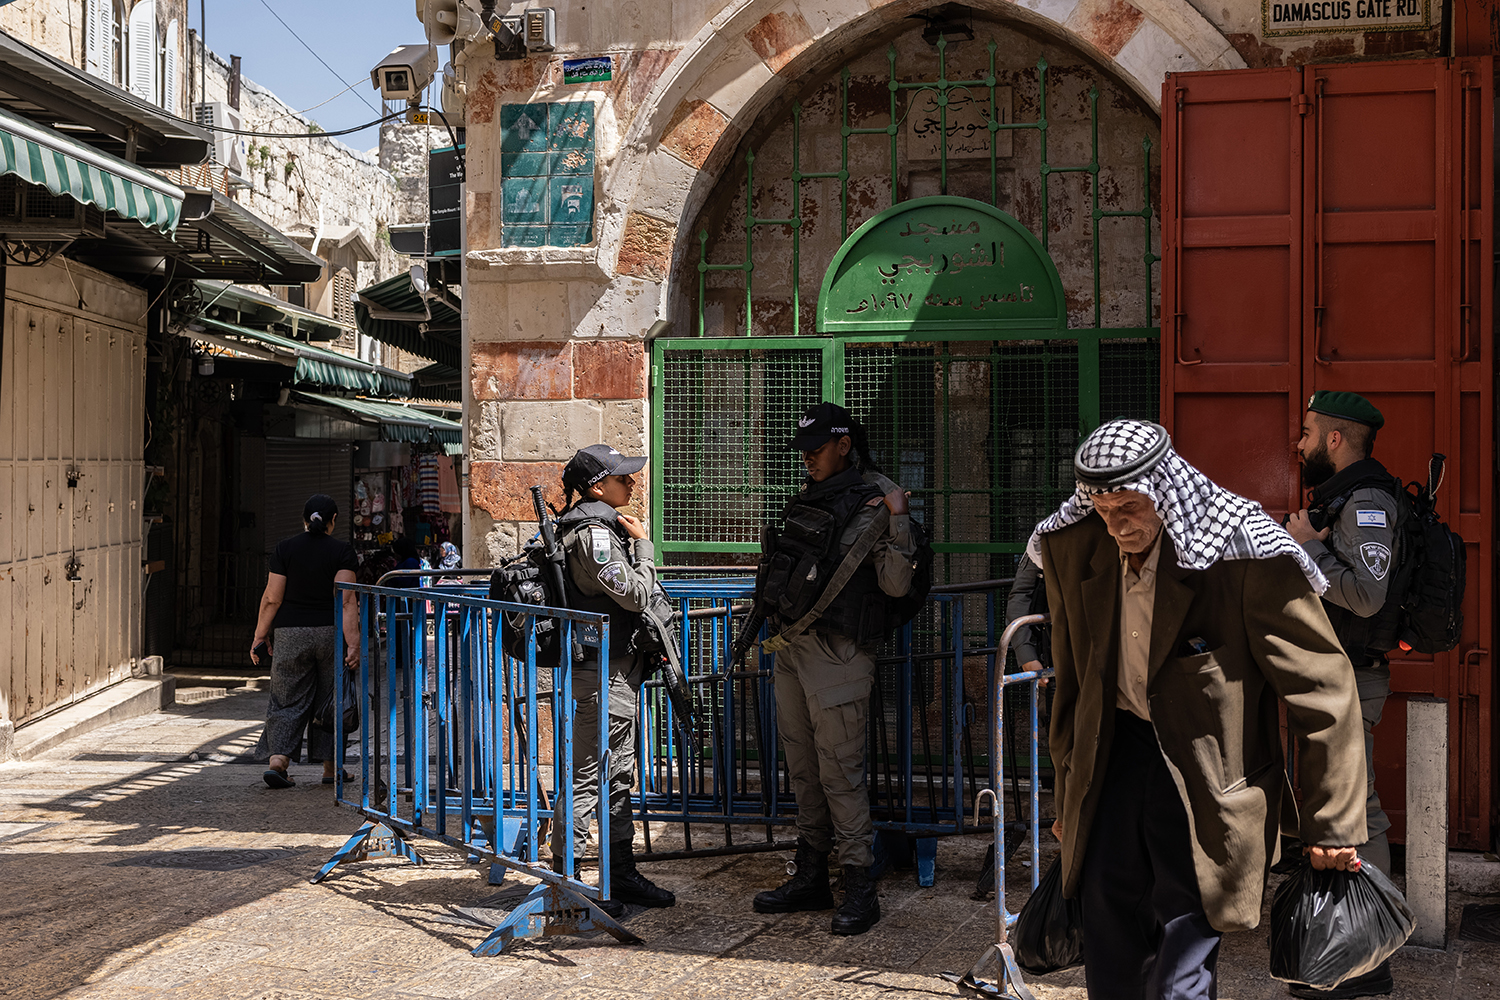 A scene in the Old City in Jerusalem on June 15. The eastern part of the city is mostly home to Palestinians, though some have been evicted from their houses.